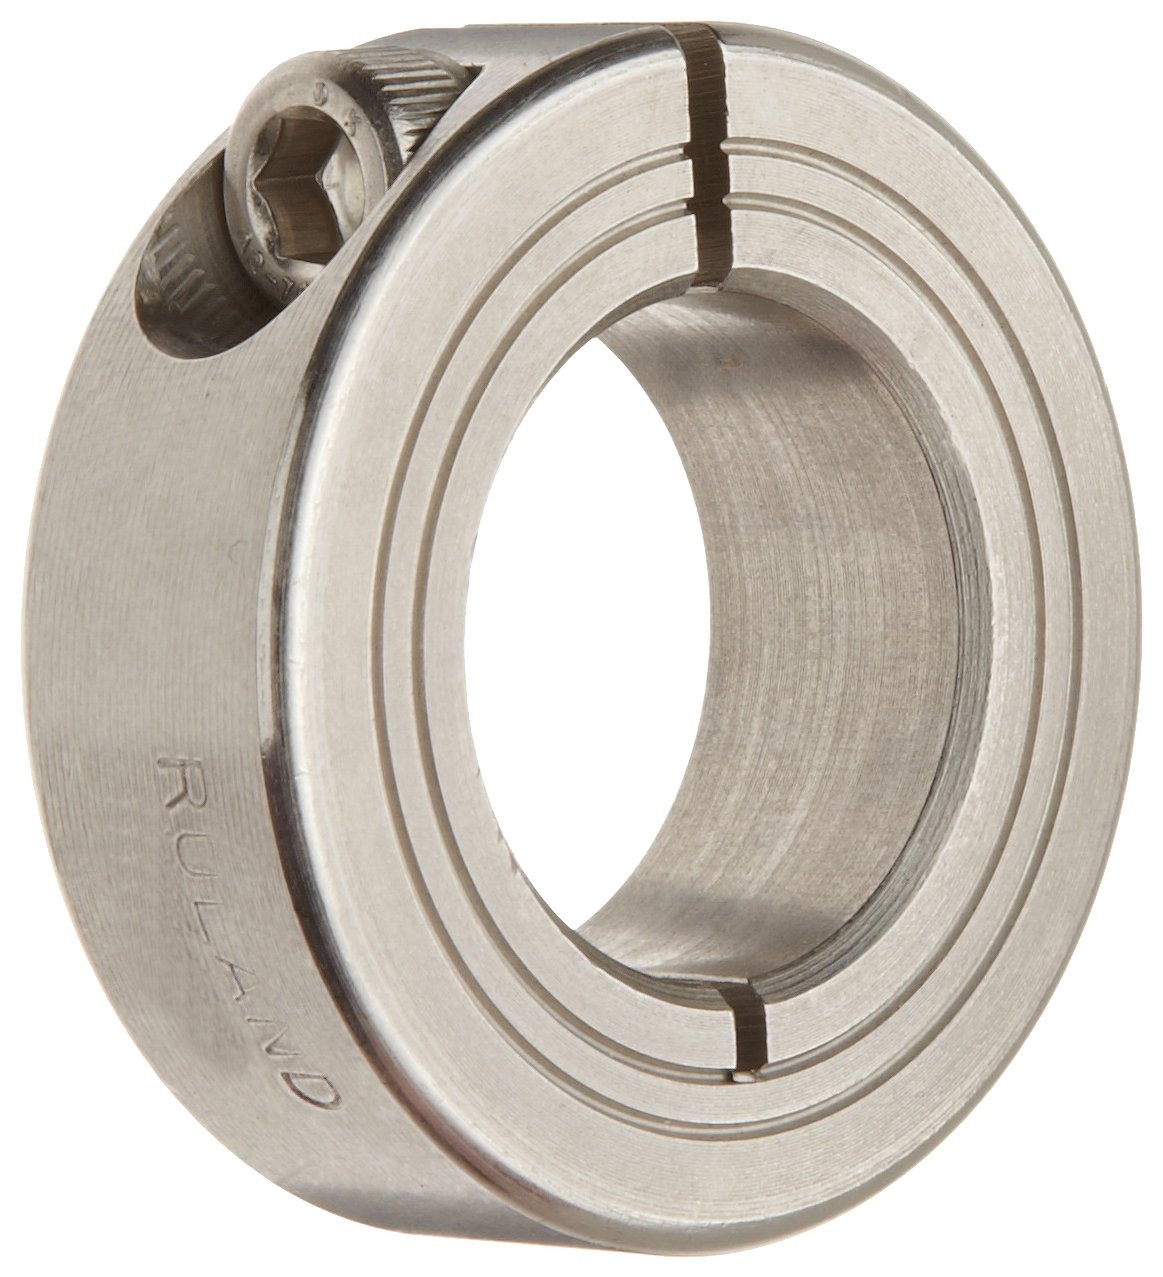 Ruland MCL-20-SS One-Piece Clamping Shaft Collar, Stainless Steel, Metric, 20mm Bore, 40mm OD, 15mm Width (Pack of 2) Ruland Manufacturing B0063KN8FU